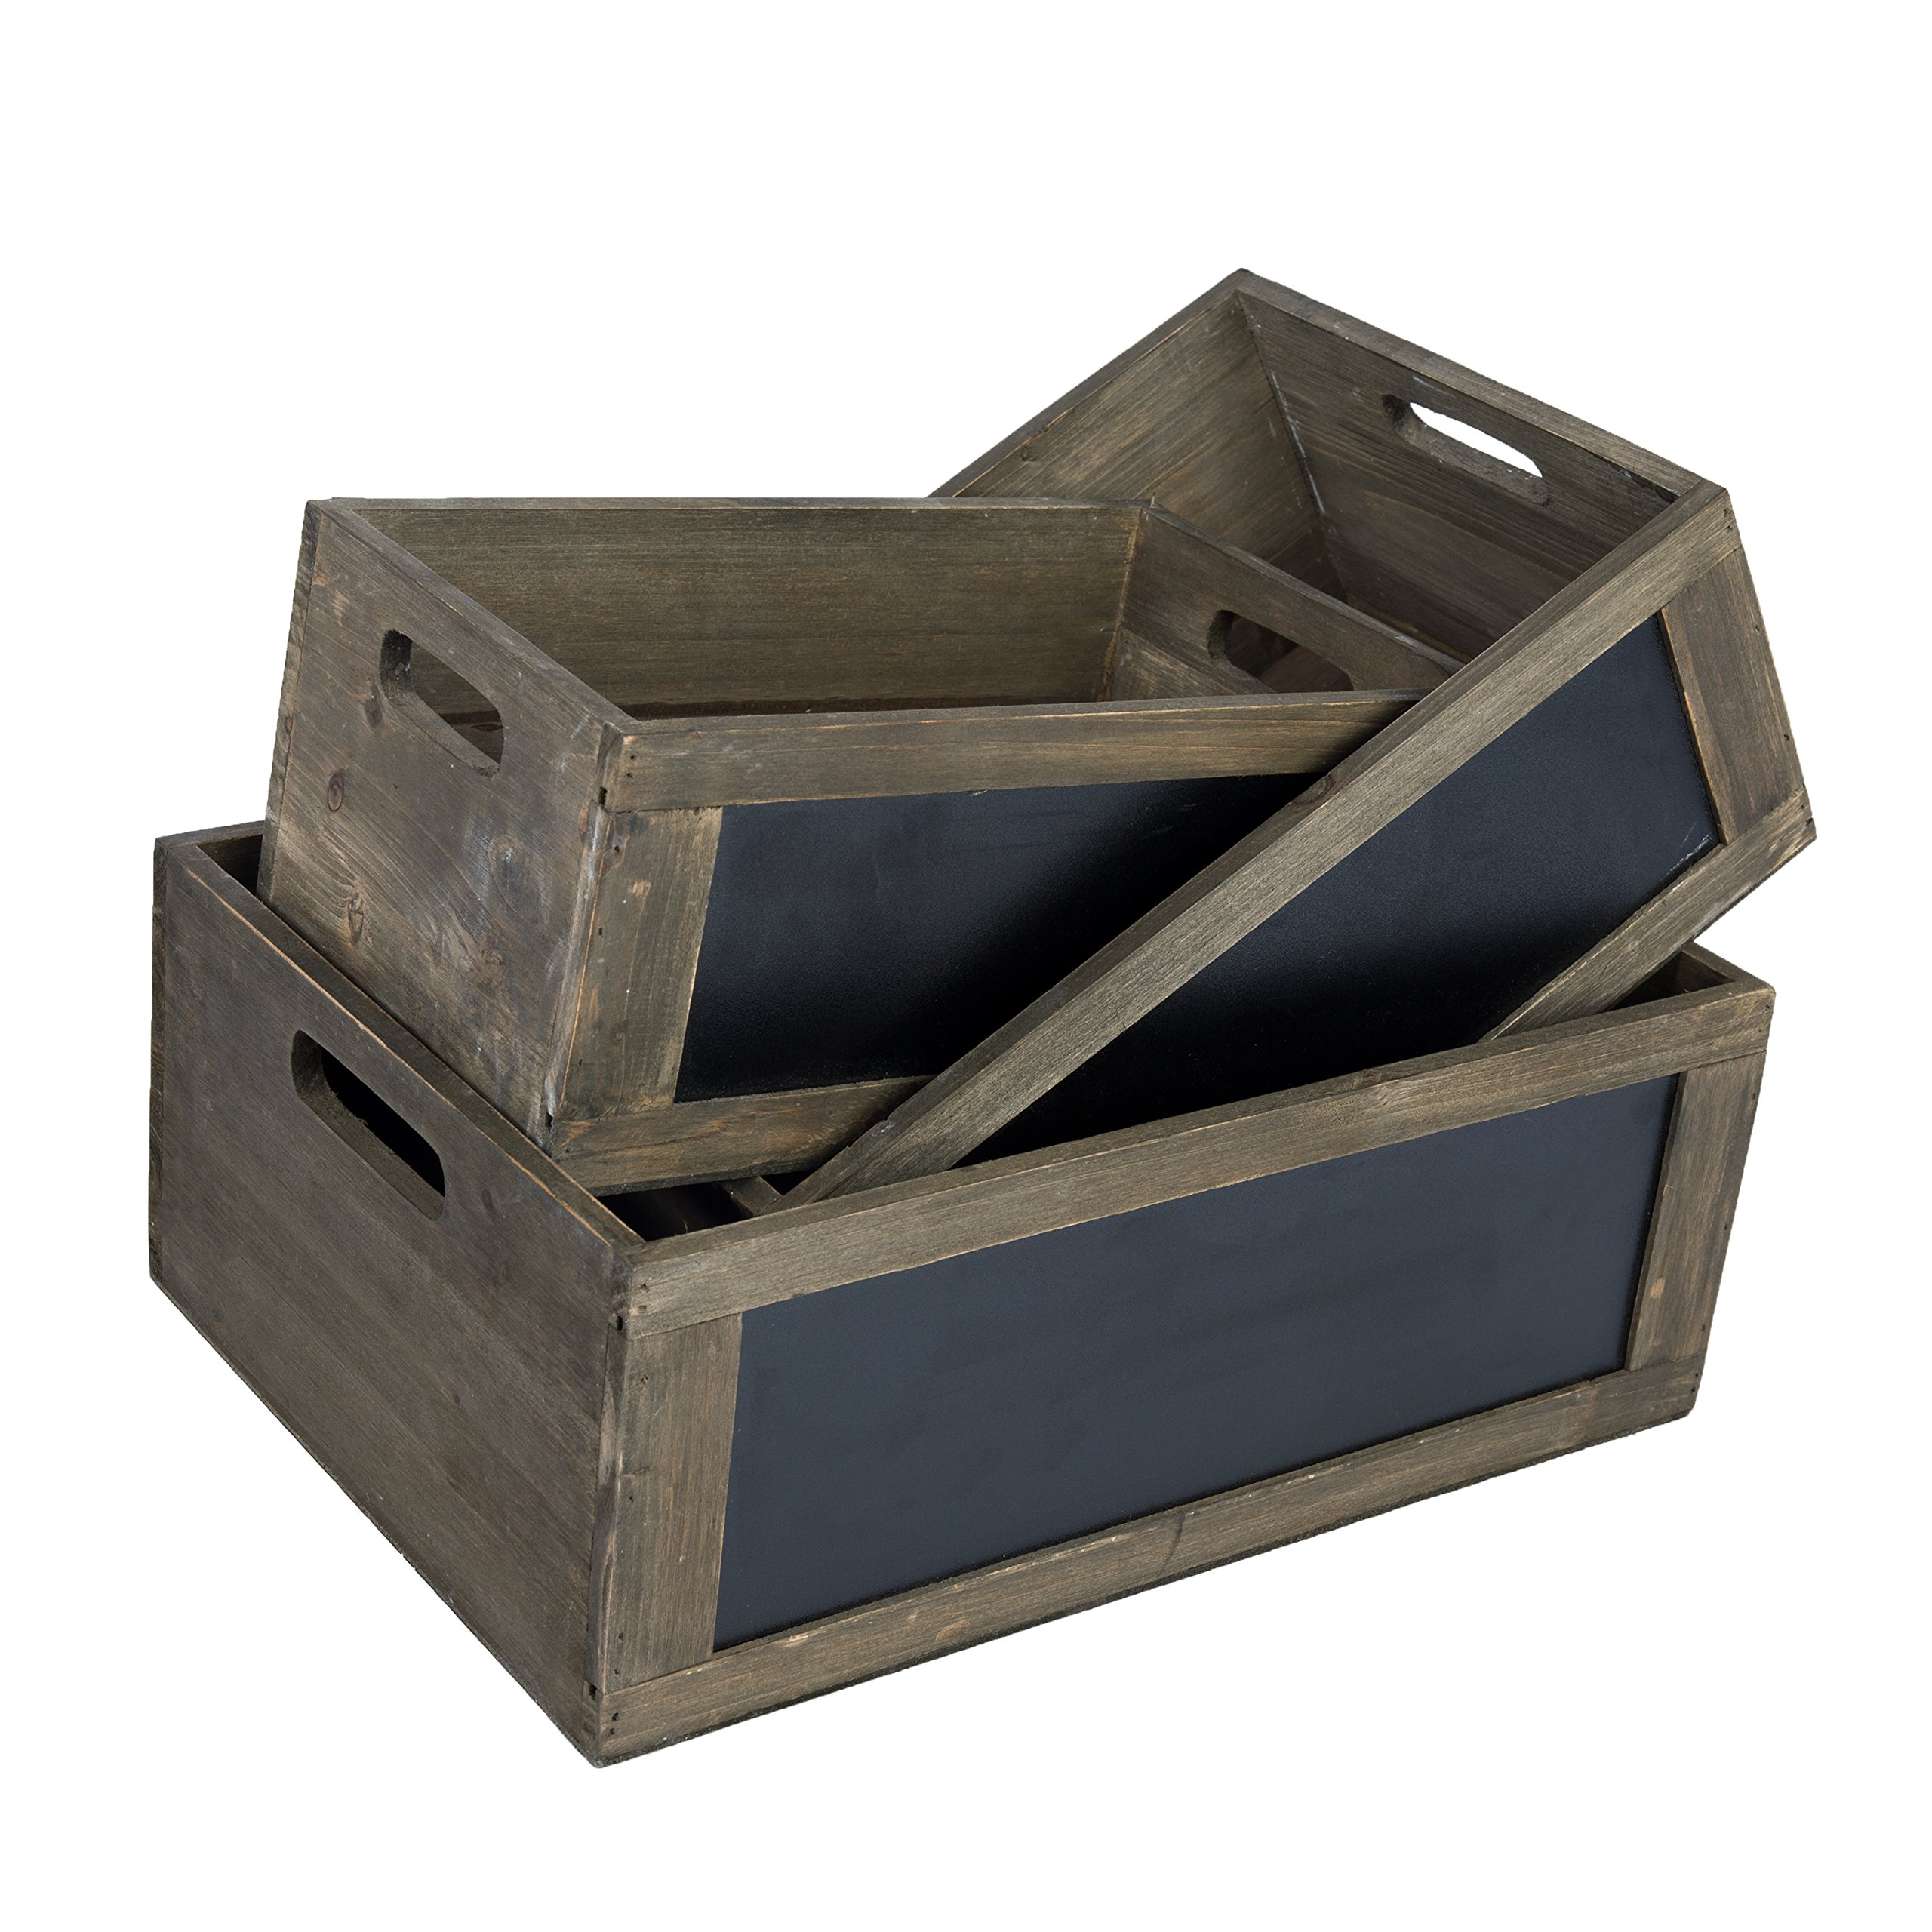 MyGift Rustic Brown Wood Nesting Storage Crates with Chalkboard Front Panel and Cutout Handles, Set of 3 by MyGift (Image #7)